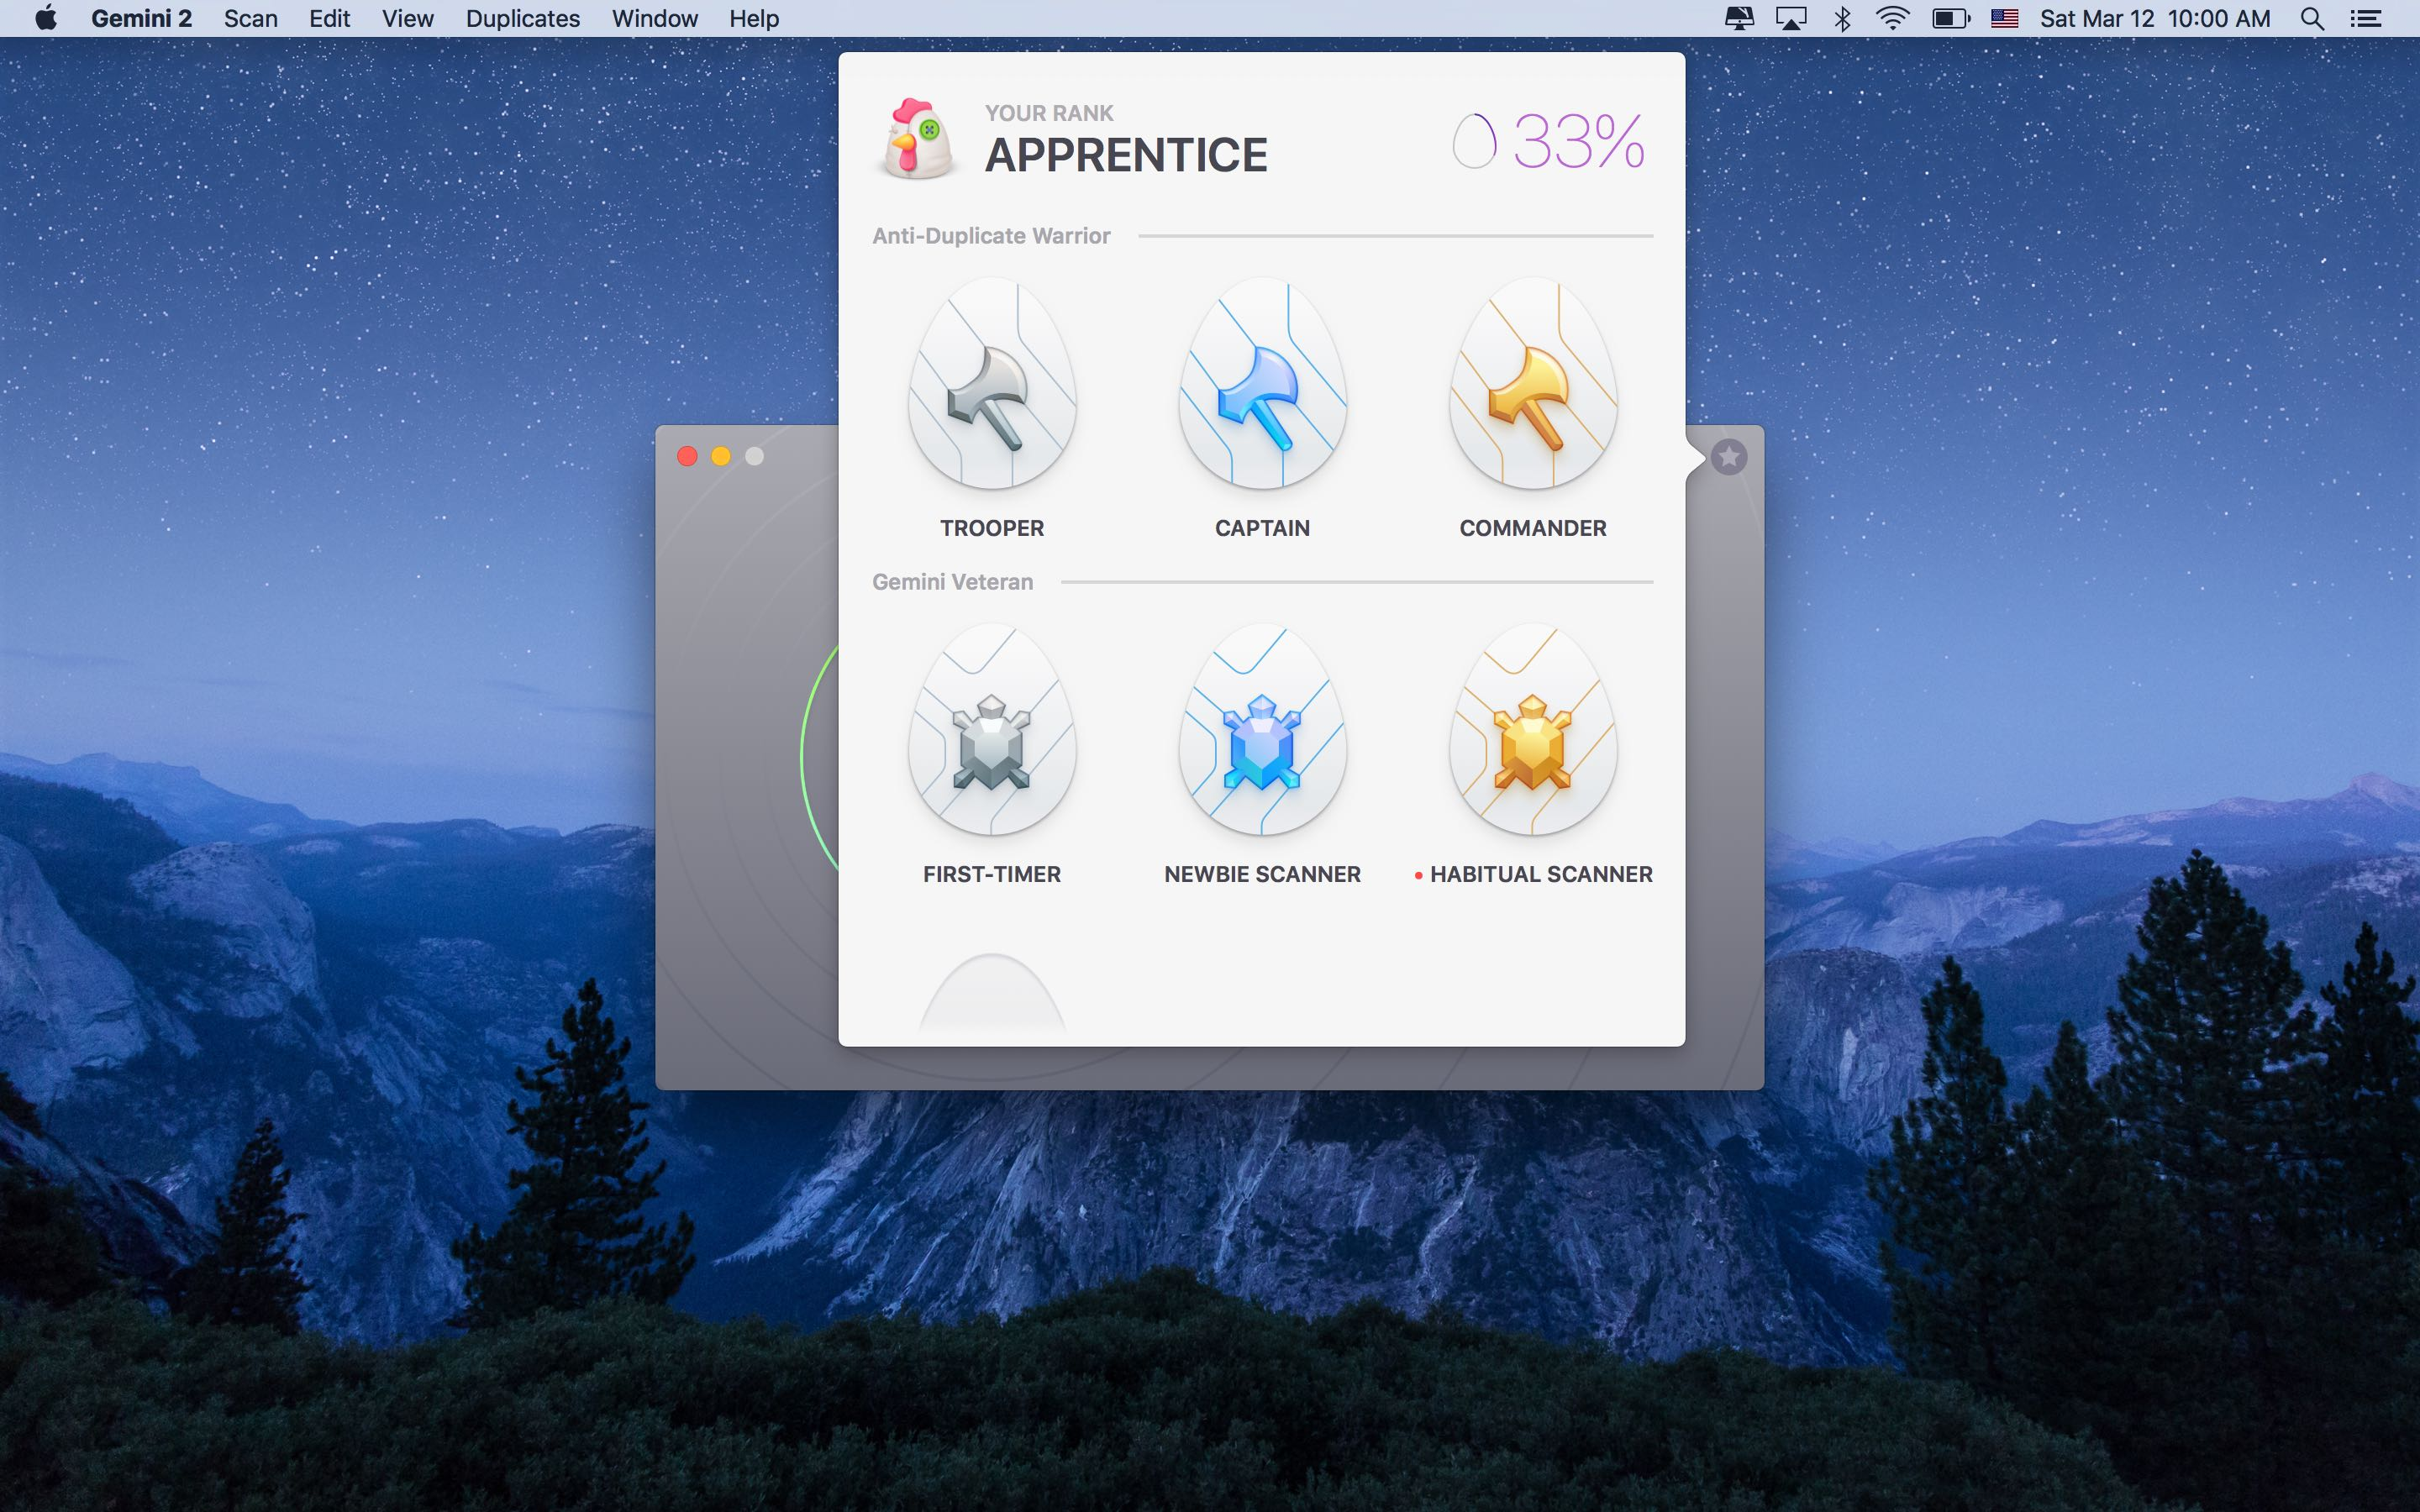 Captura de pantalla 001 de Gemini 2.0 para OS X Achievements Mac